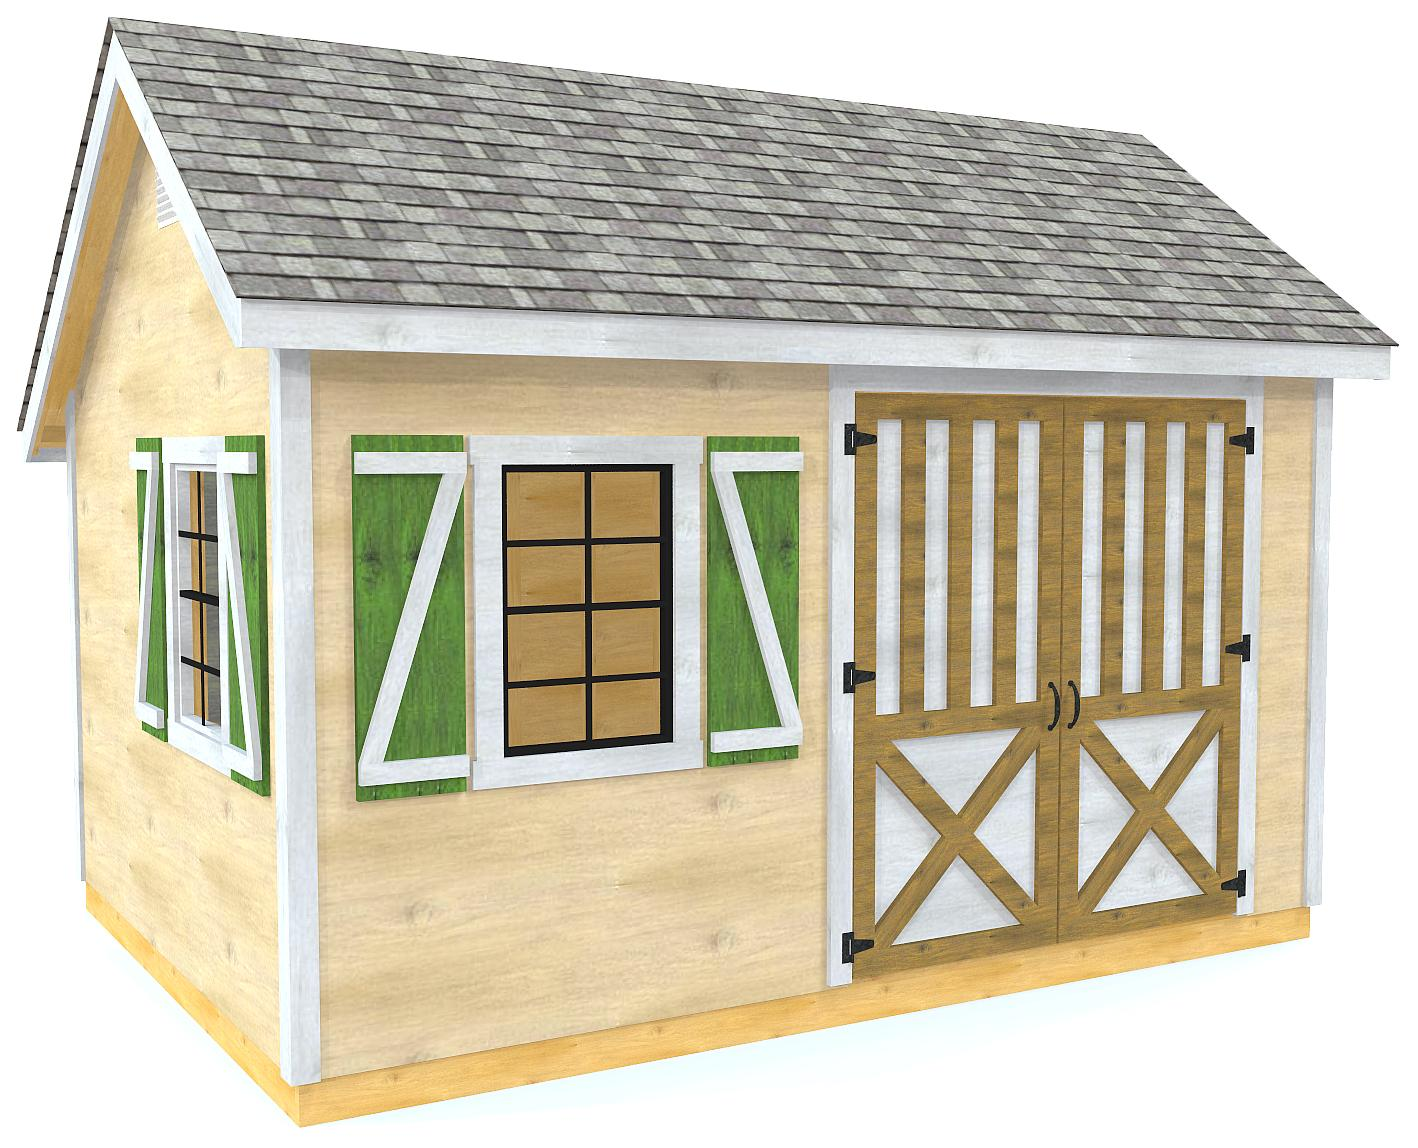 8x12 / 10x14 Ernest Shed Plan | Saltbox Storage Shed Design – Paul's Playhouse X With Loft Plans on barn style sheds with loft, yard sheds with loft, 16x20 cabin plan with loft, 14x16 cabin with a loft, one room cabin with loft, 12x12 cabin with sleeping loft,